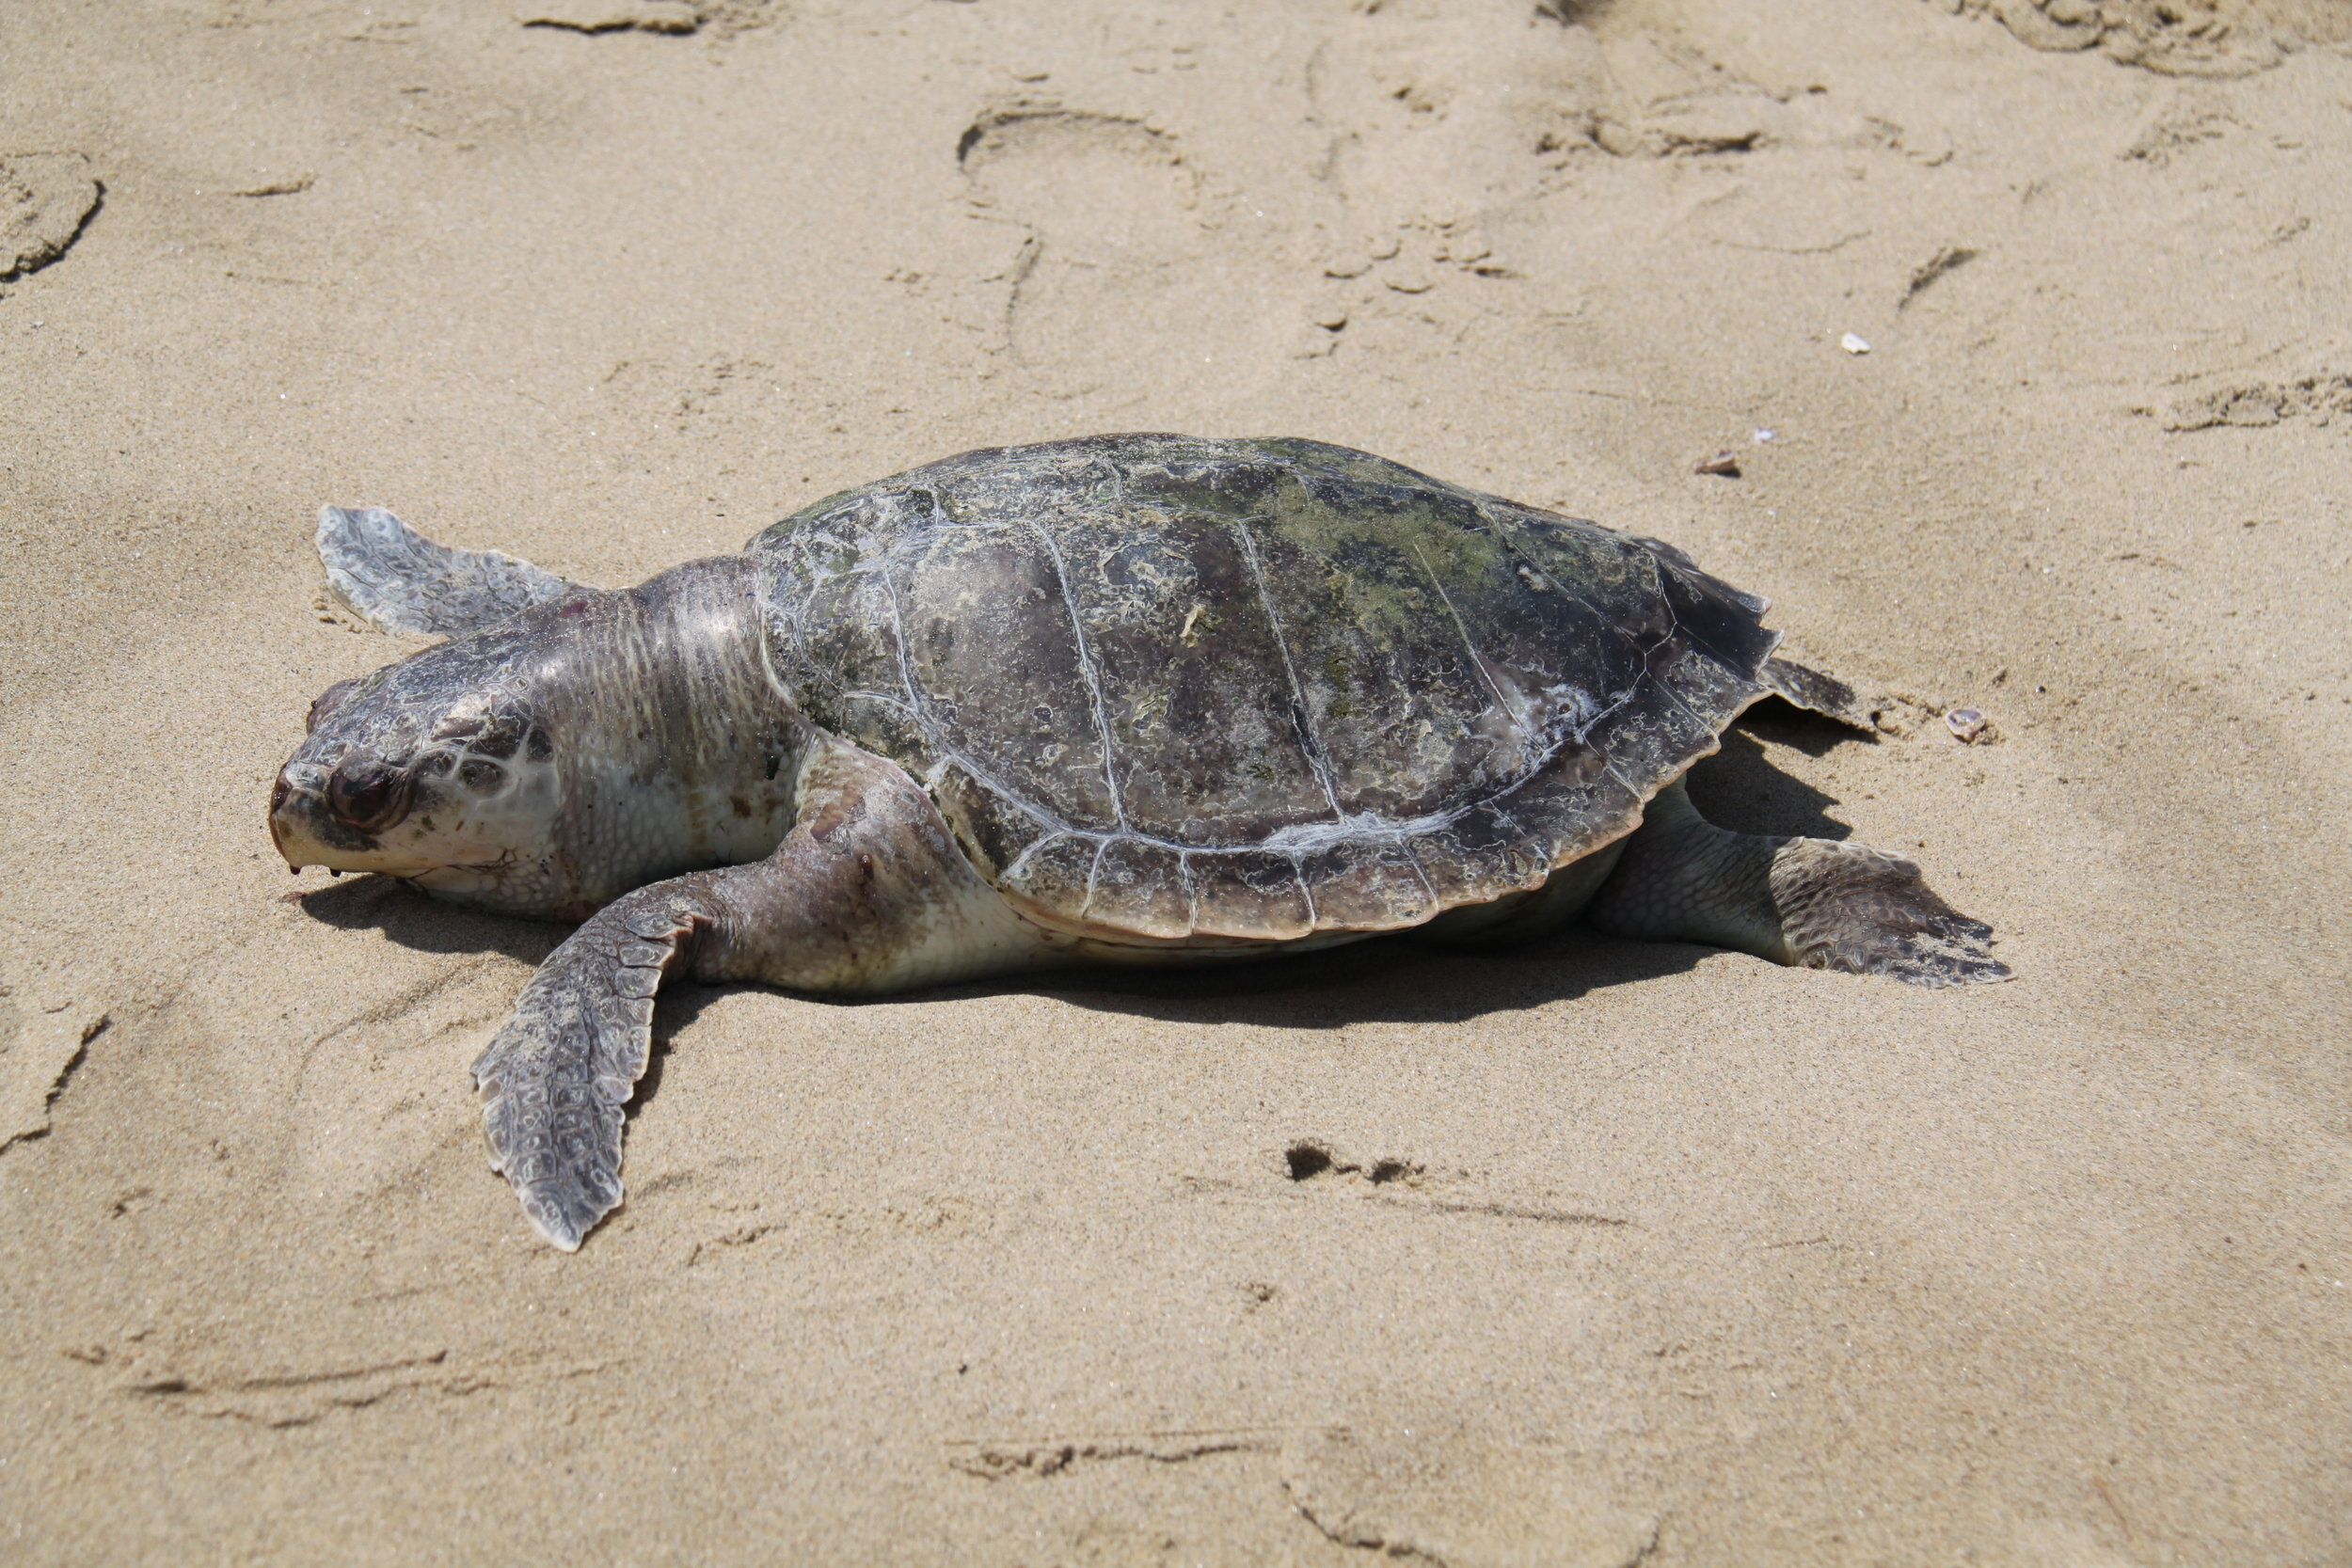 A Kemps Ridley Sea Turtle found dead in Port Monmouth, NJ in 2010. Kemp's ridley sea turtles, also called the Atlantic ridley sea turtle, is the rarest species of sea turtle and is critically endangered.